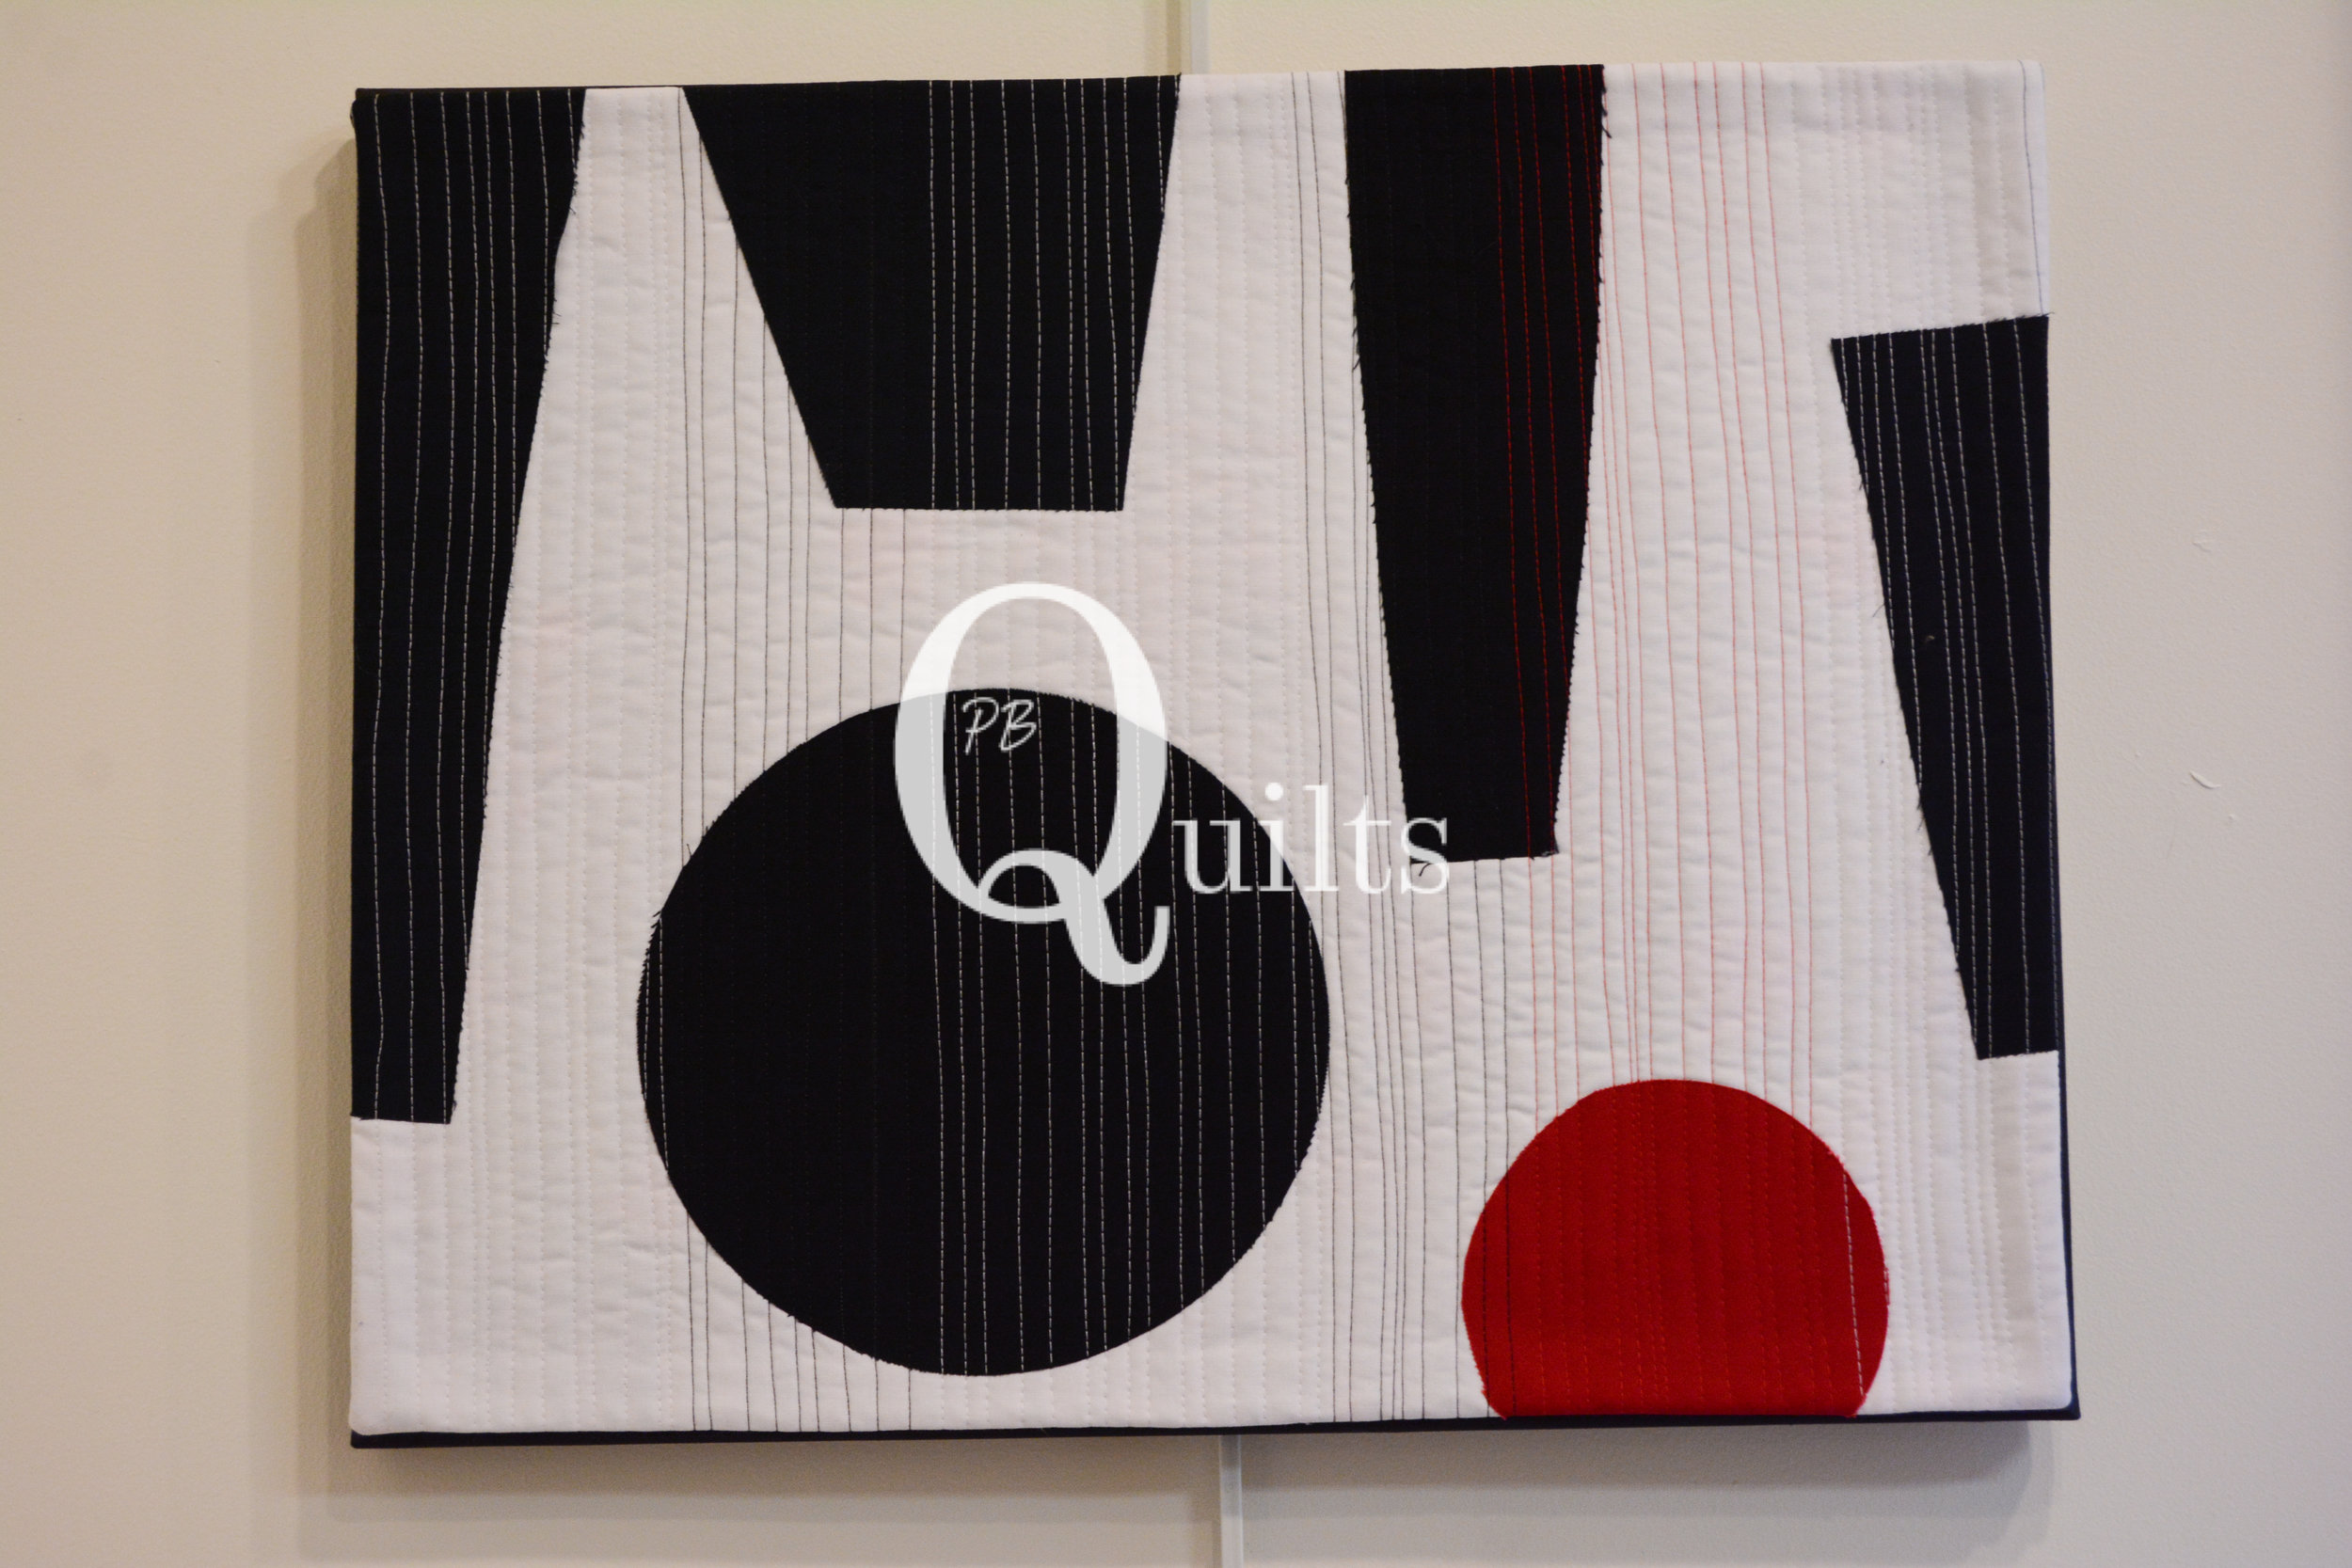 Black O! on canvas 14x16%22 $75.jpg